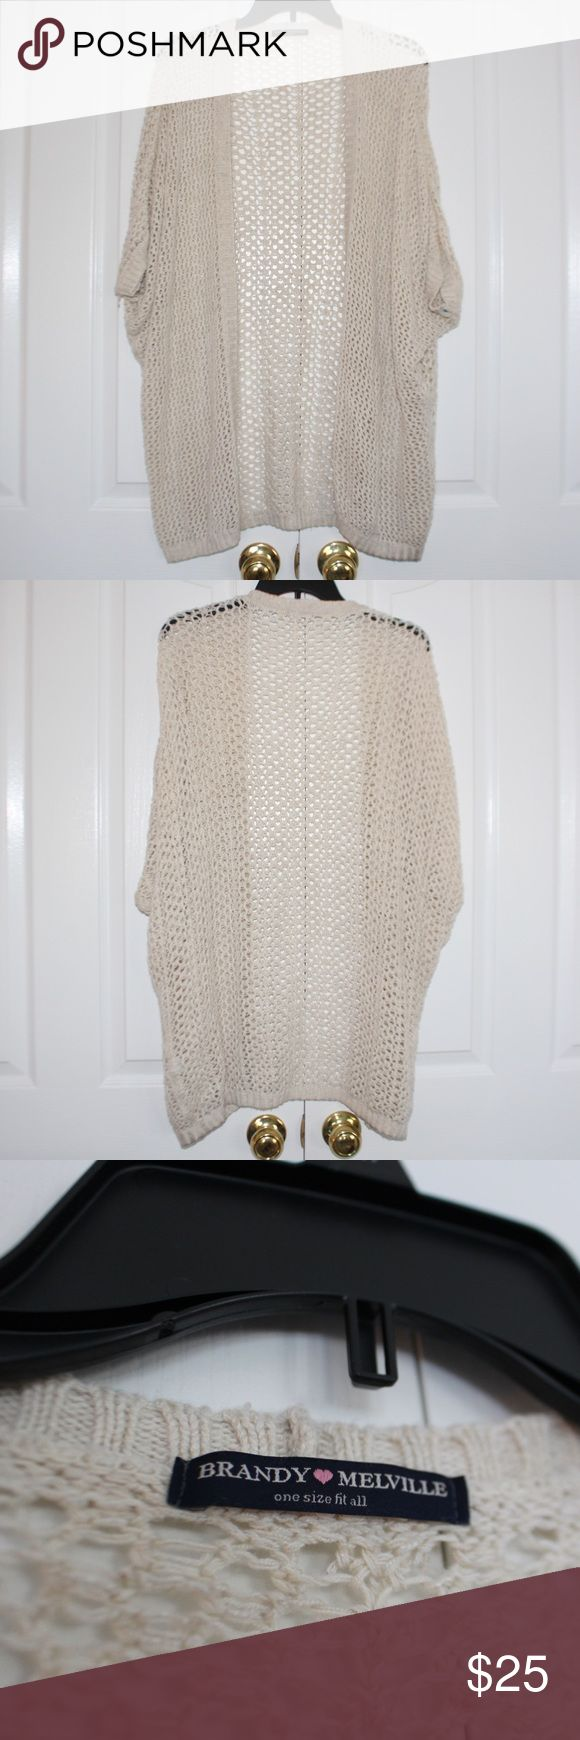 Brandy Melville Cardigan Adorable cream colored brandy melville cardigan. Good condition and perfect for a colder day or to throw on to dress up an outfit! Brandy Melville Sweaters Cardigans